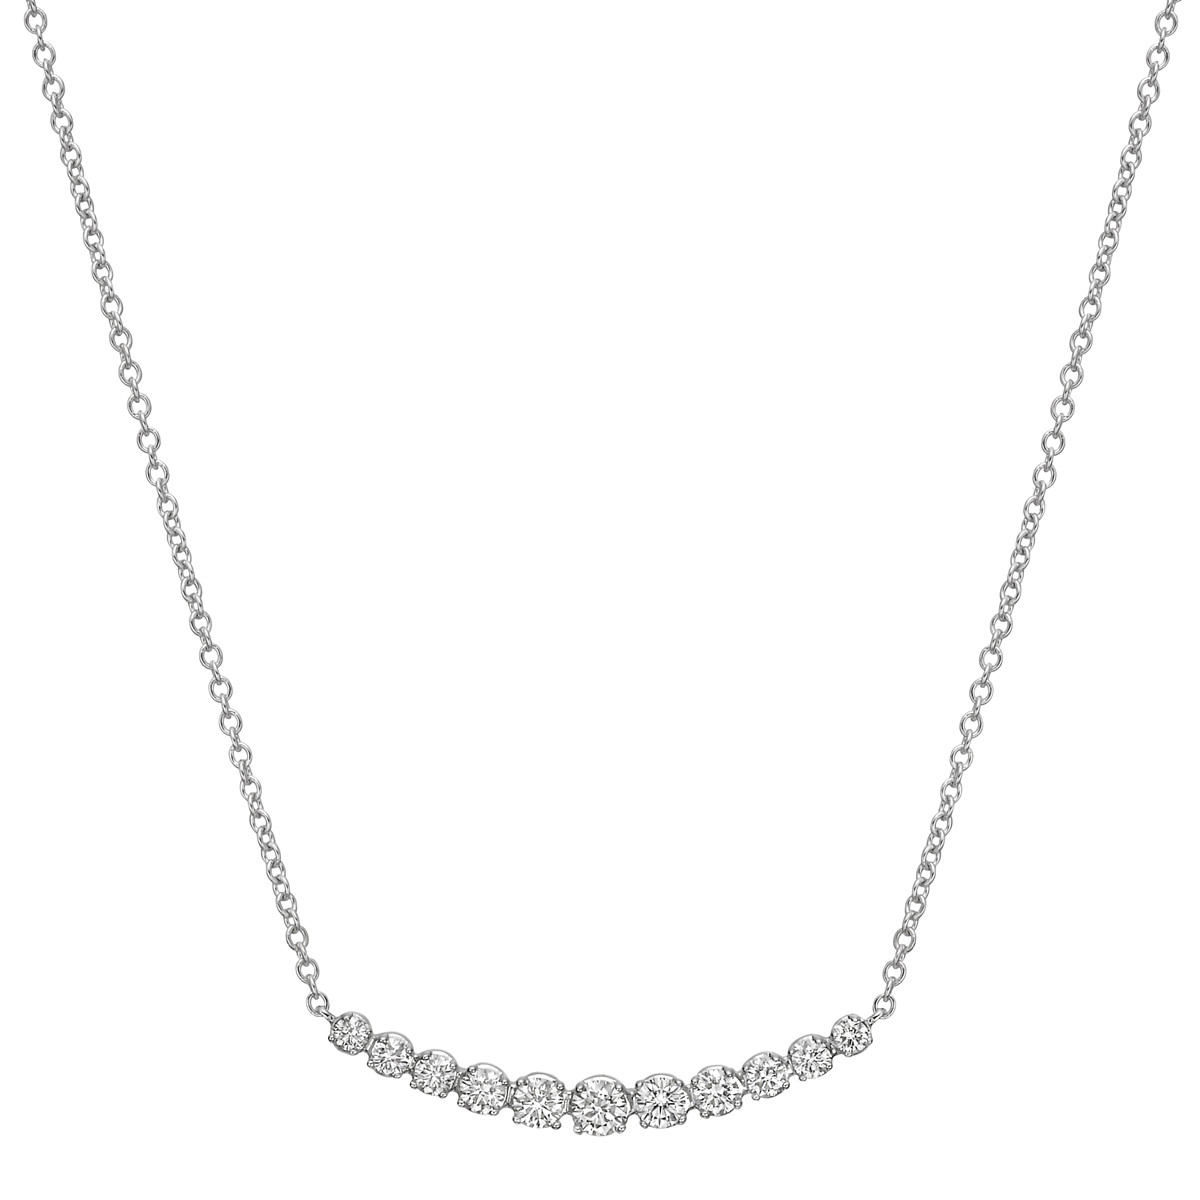 18k White Gold & Eleven Diamond Curved Bar Pendant